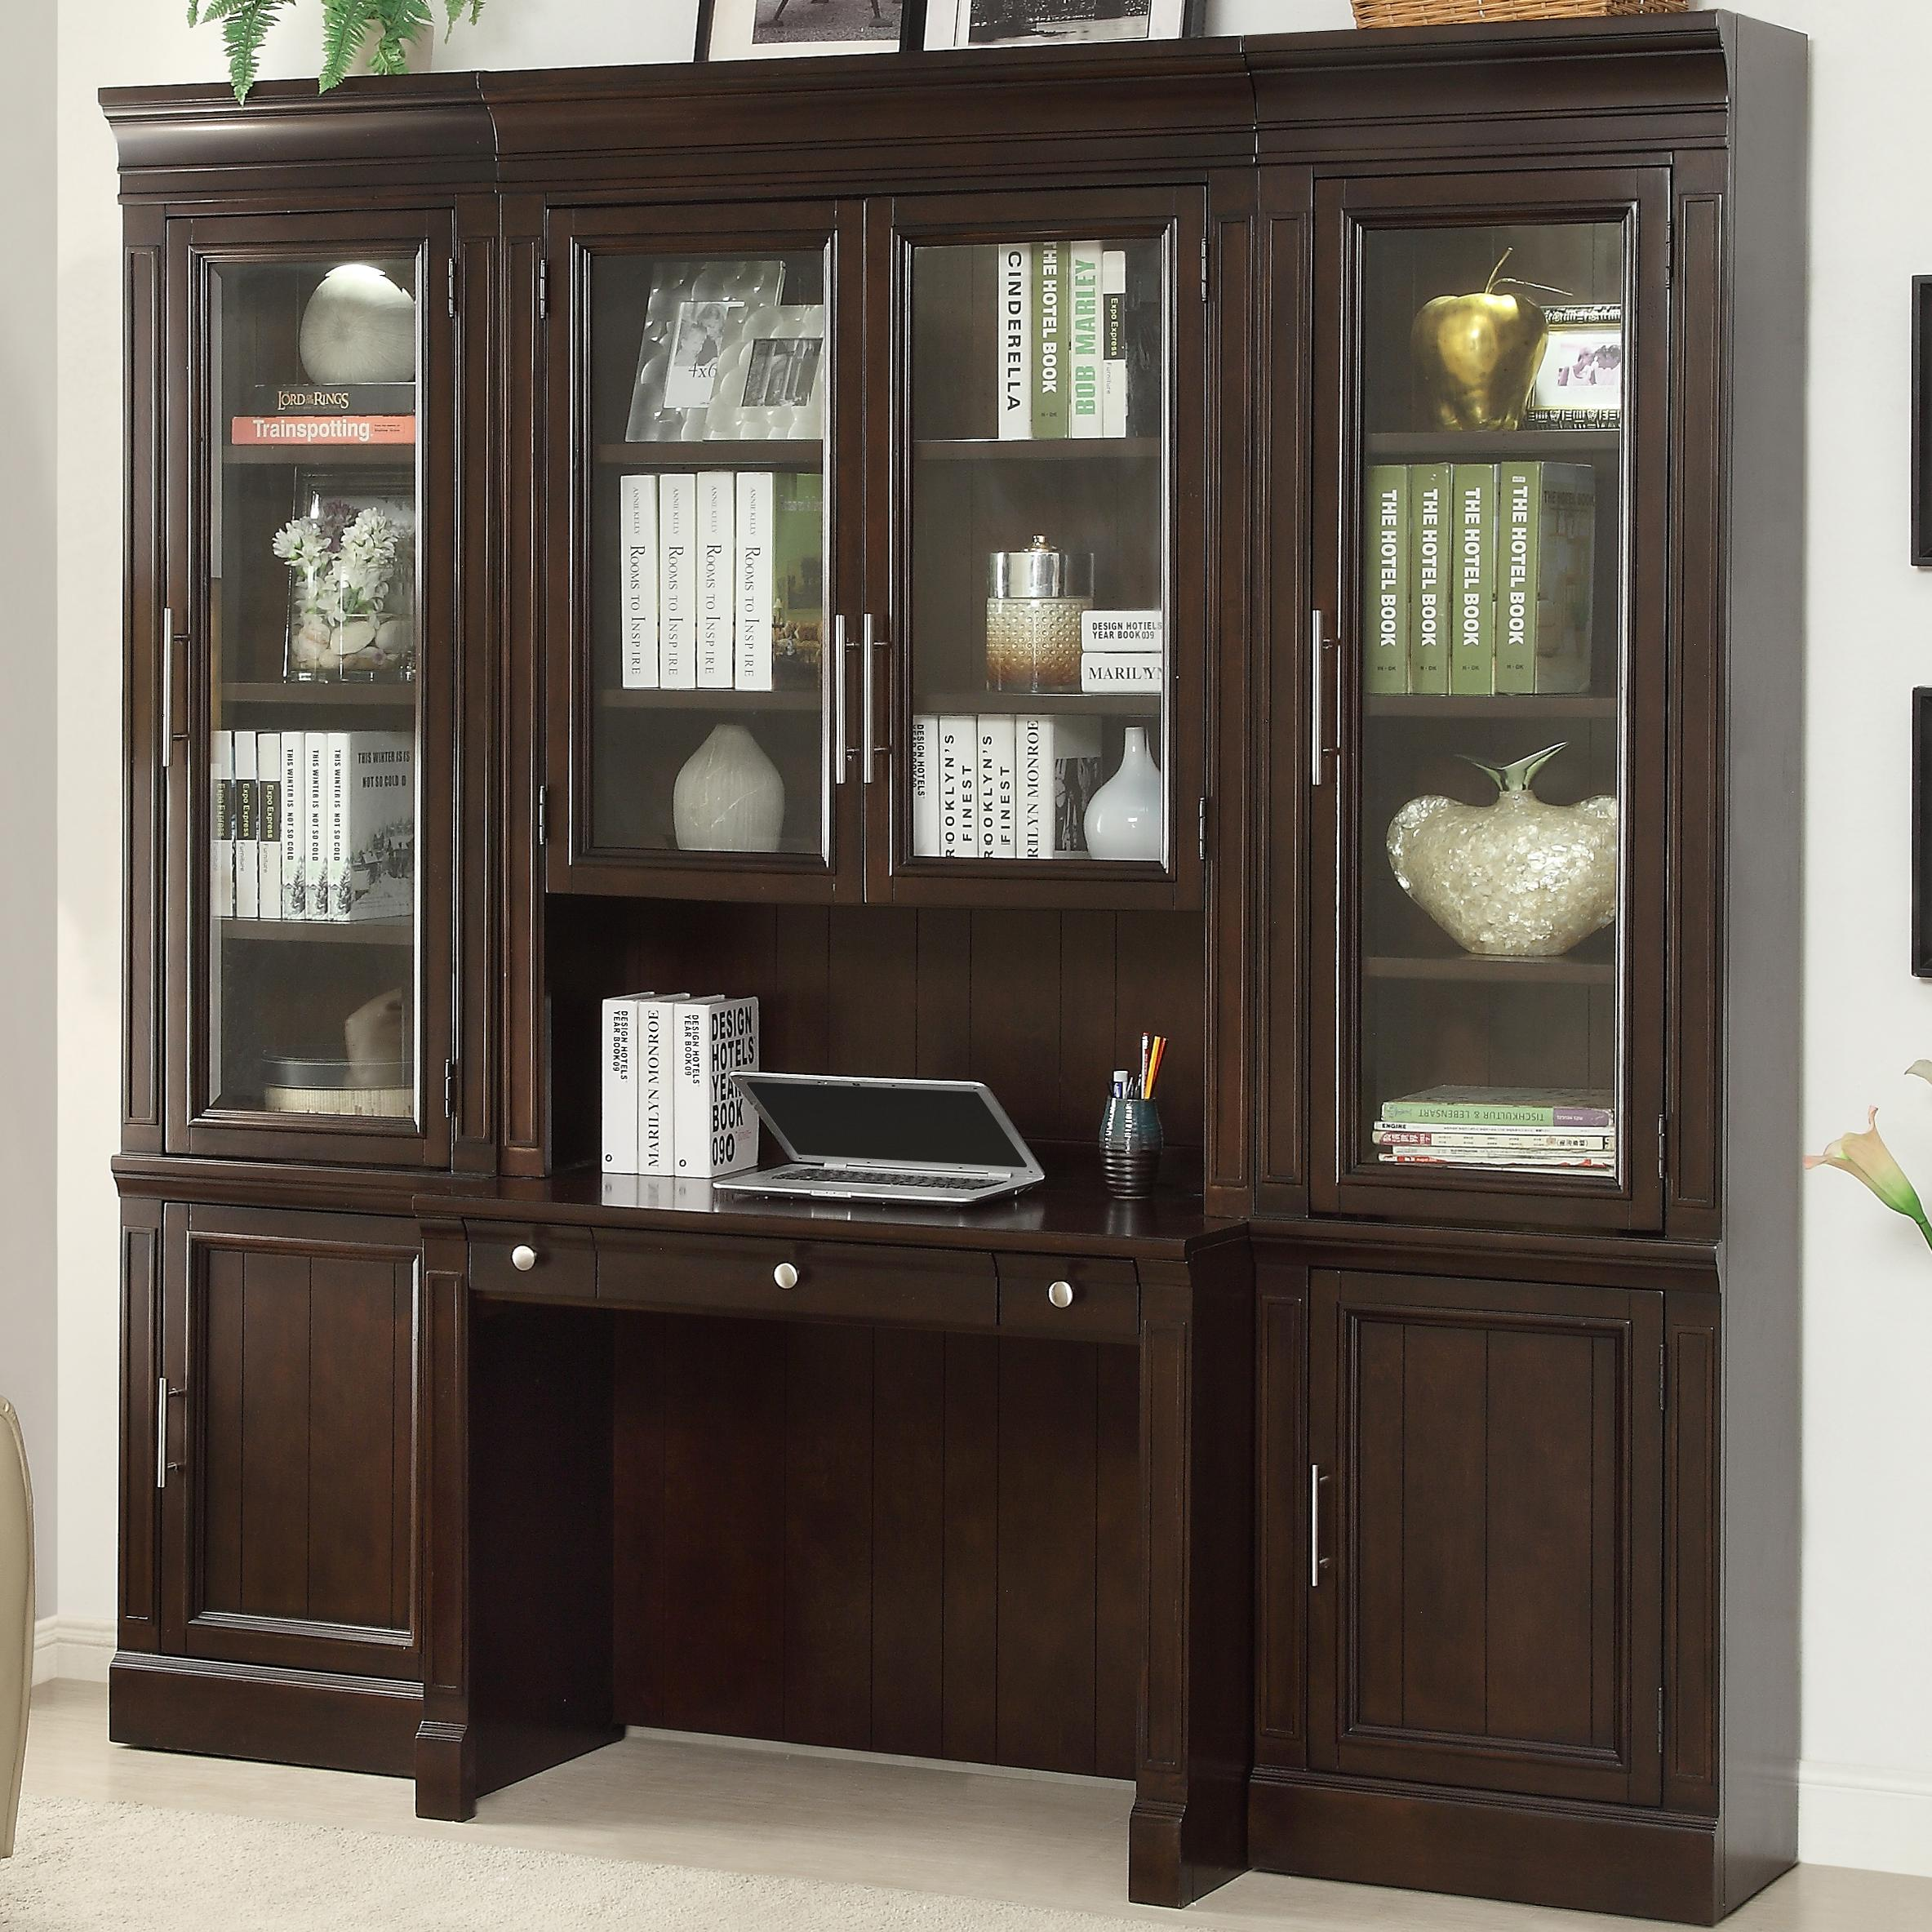 Parker House Stanford Wall Unit - Item Number: STA Wall Unit 2